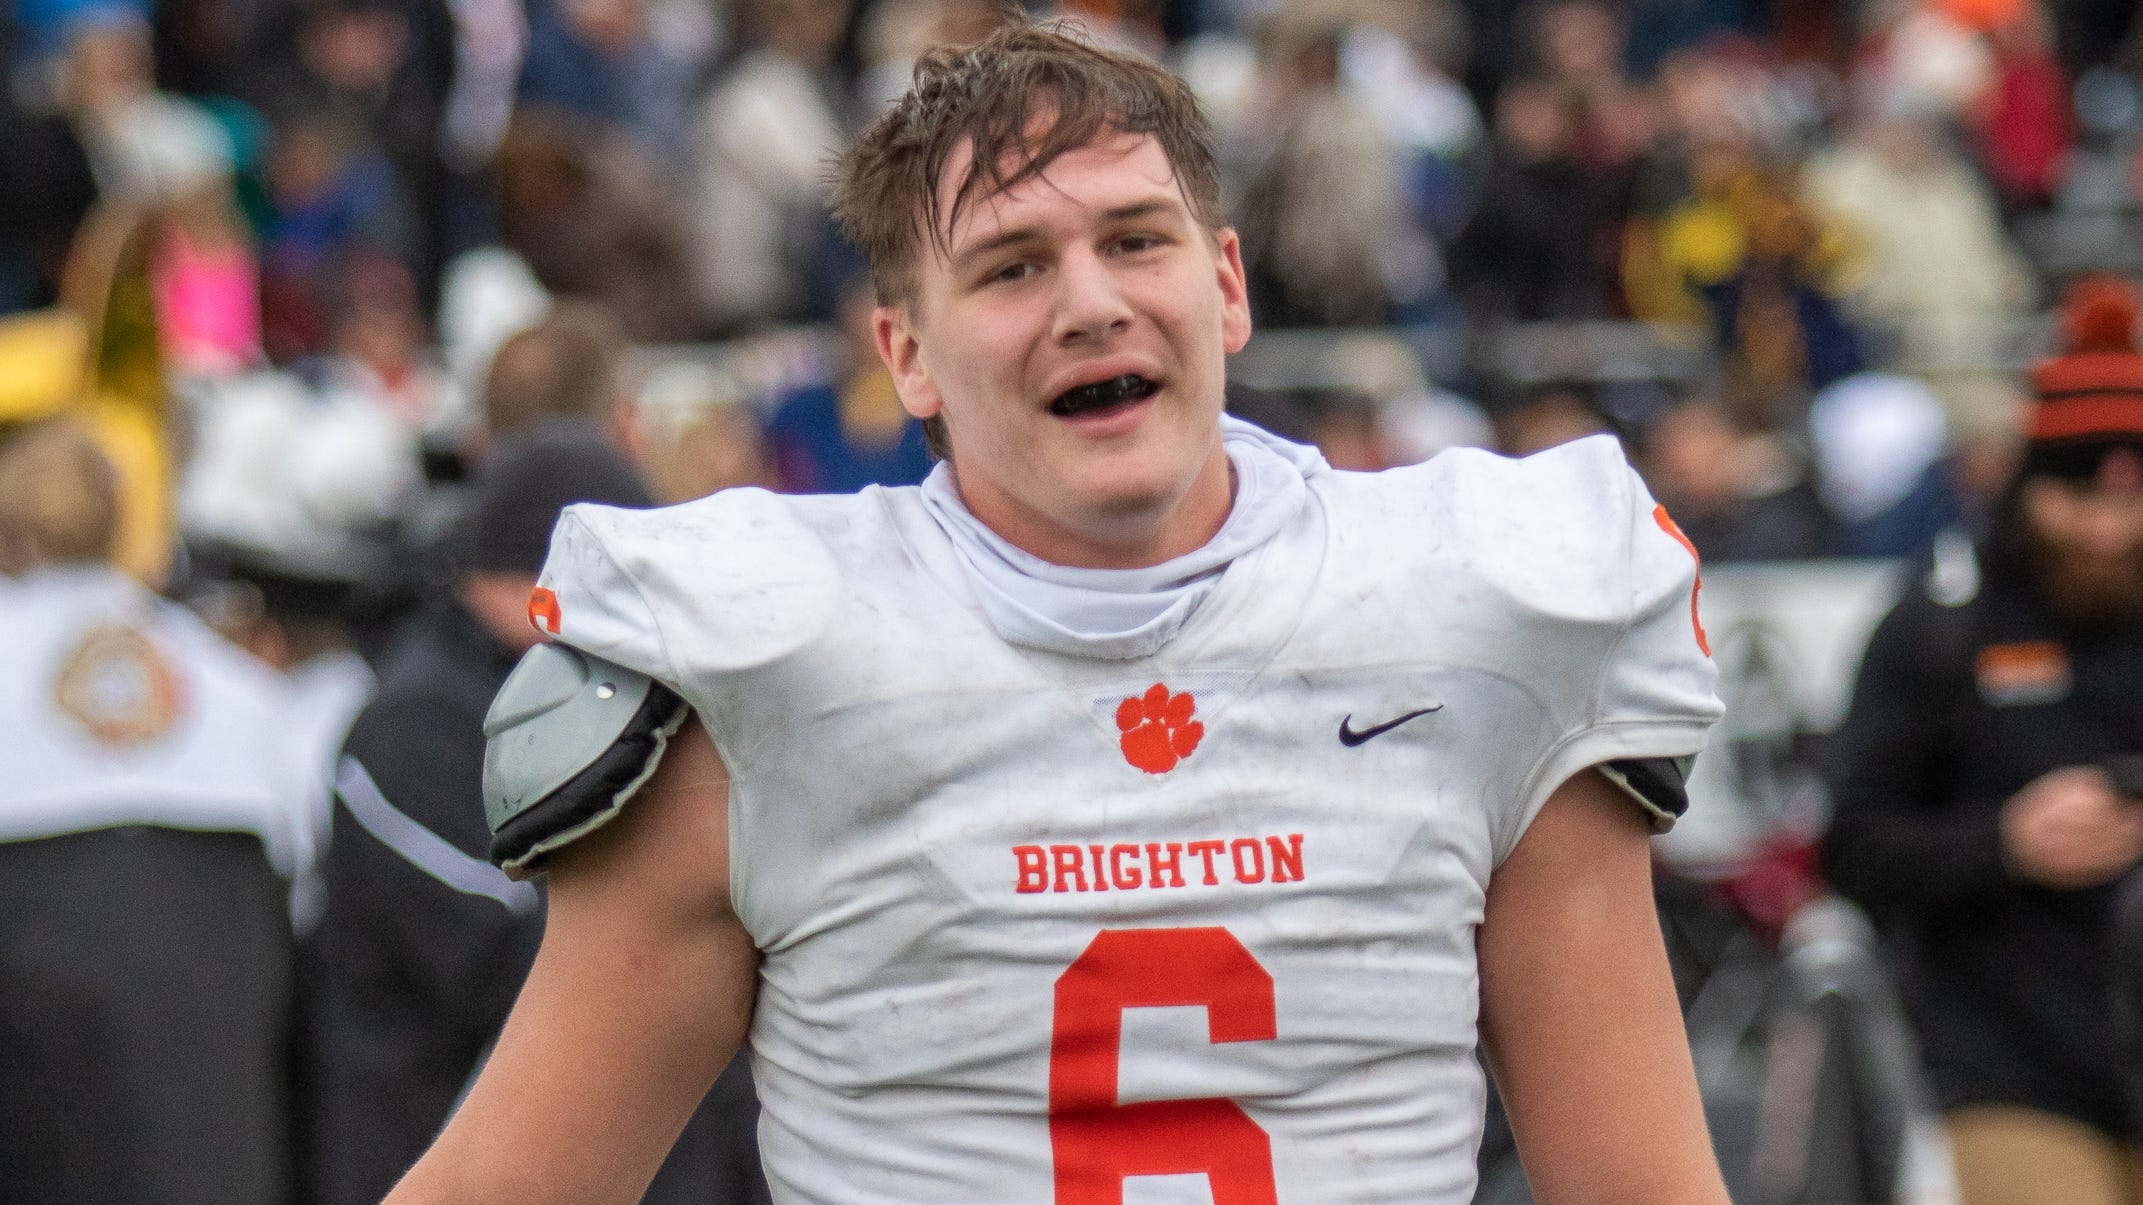 Brighton puts two players on all-state football team